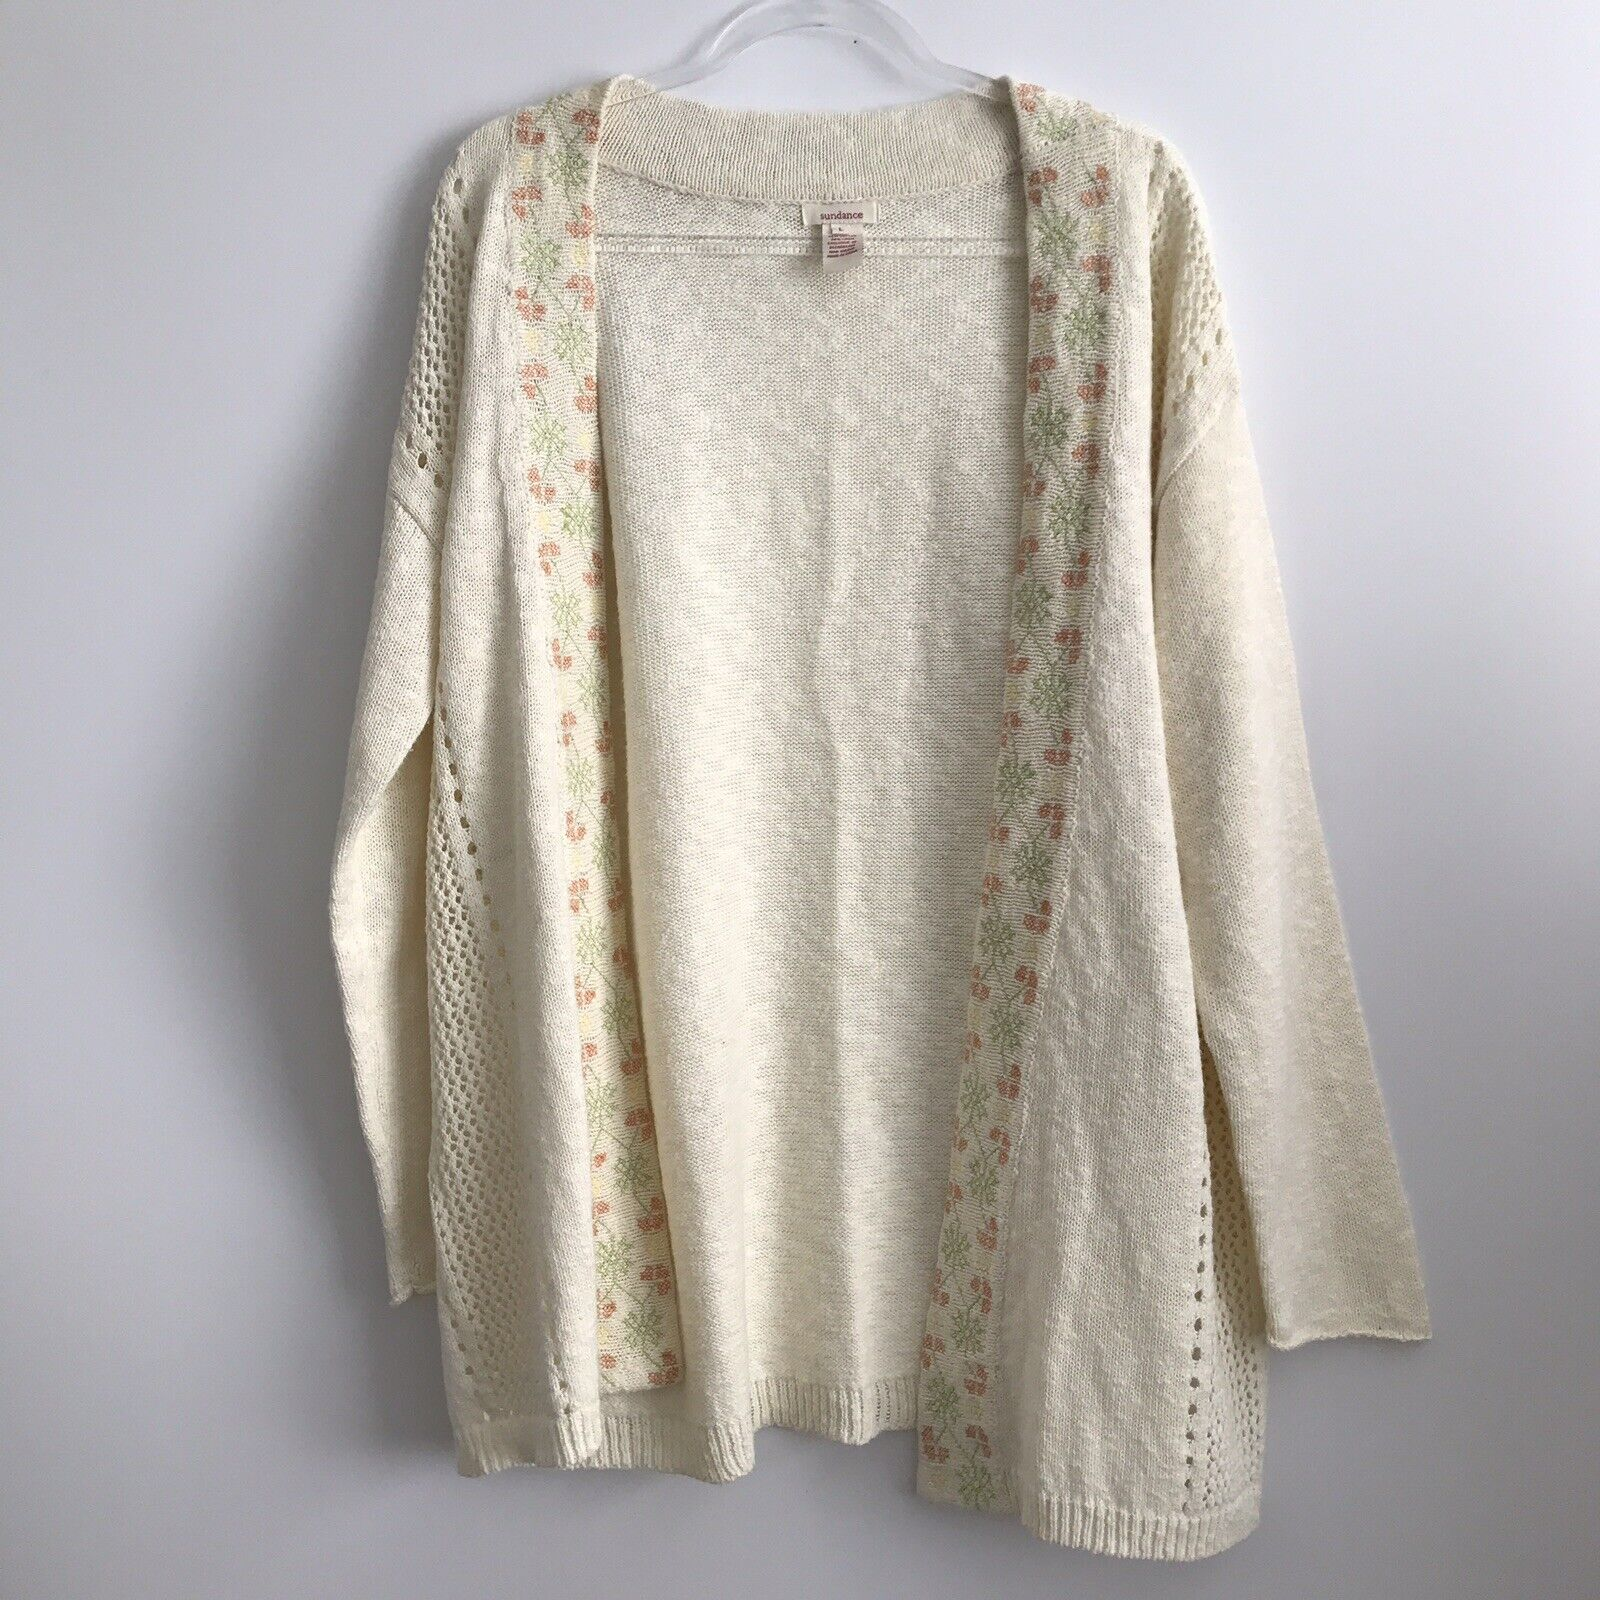 1f1a1938fa86 Women s Ivory Floral Open Cardigan Sweater Cotton Linen Blend - Size ...